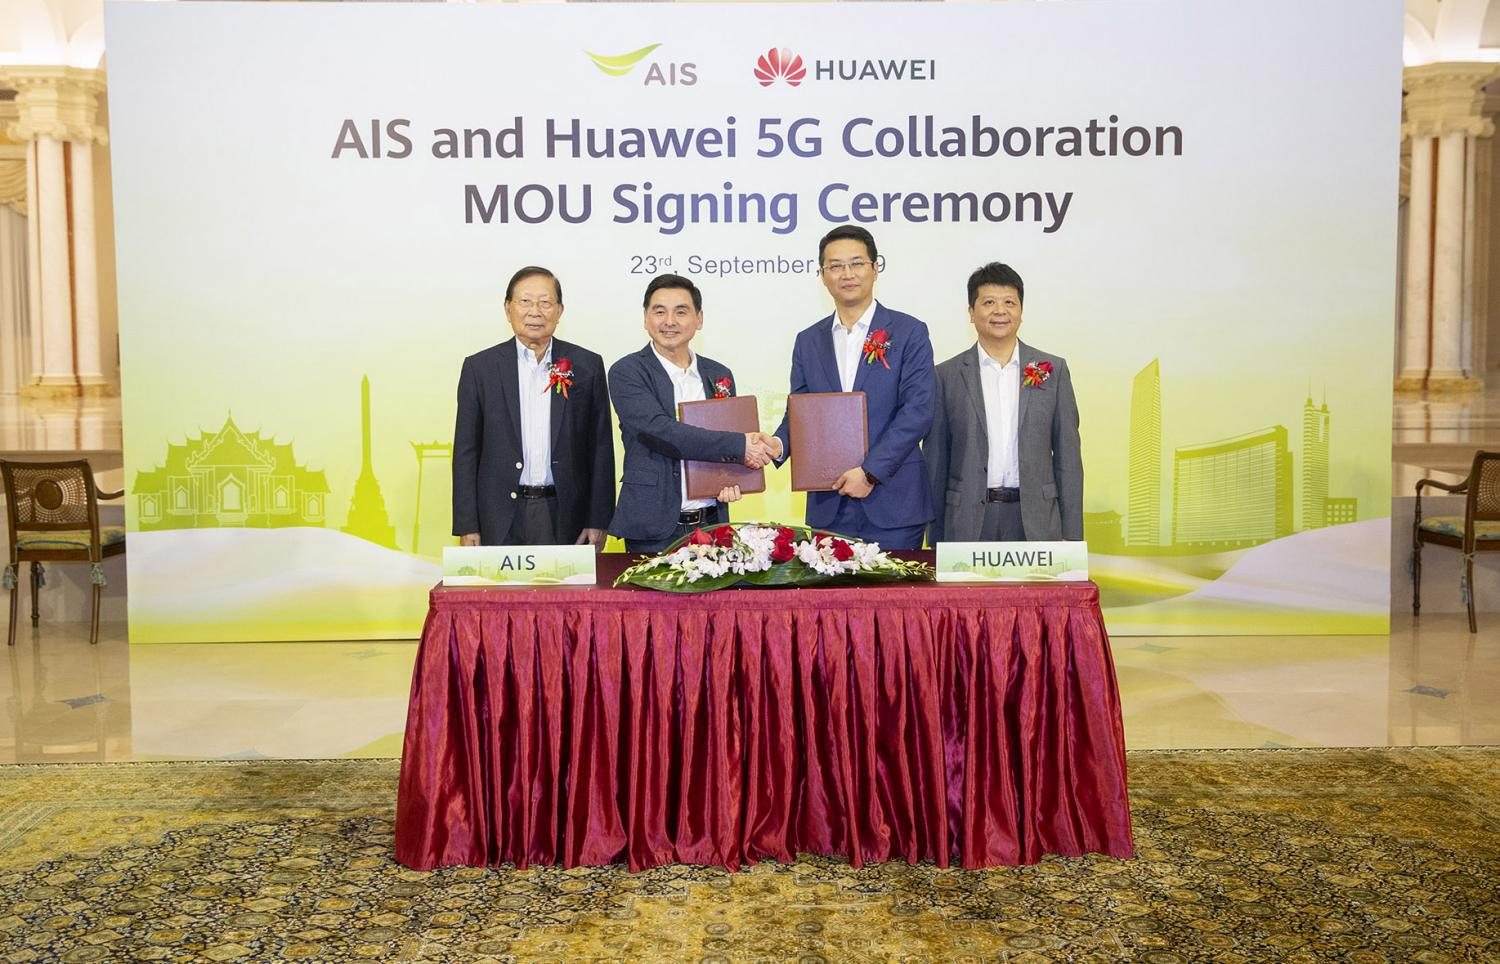 Mr Somchai (second left) and Mr Wu make it official at the signing ceremony for AIS and Huawei's cooperation on 5G technology and services in Thailand.